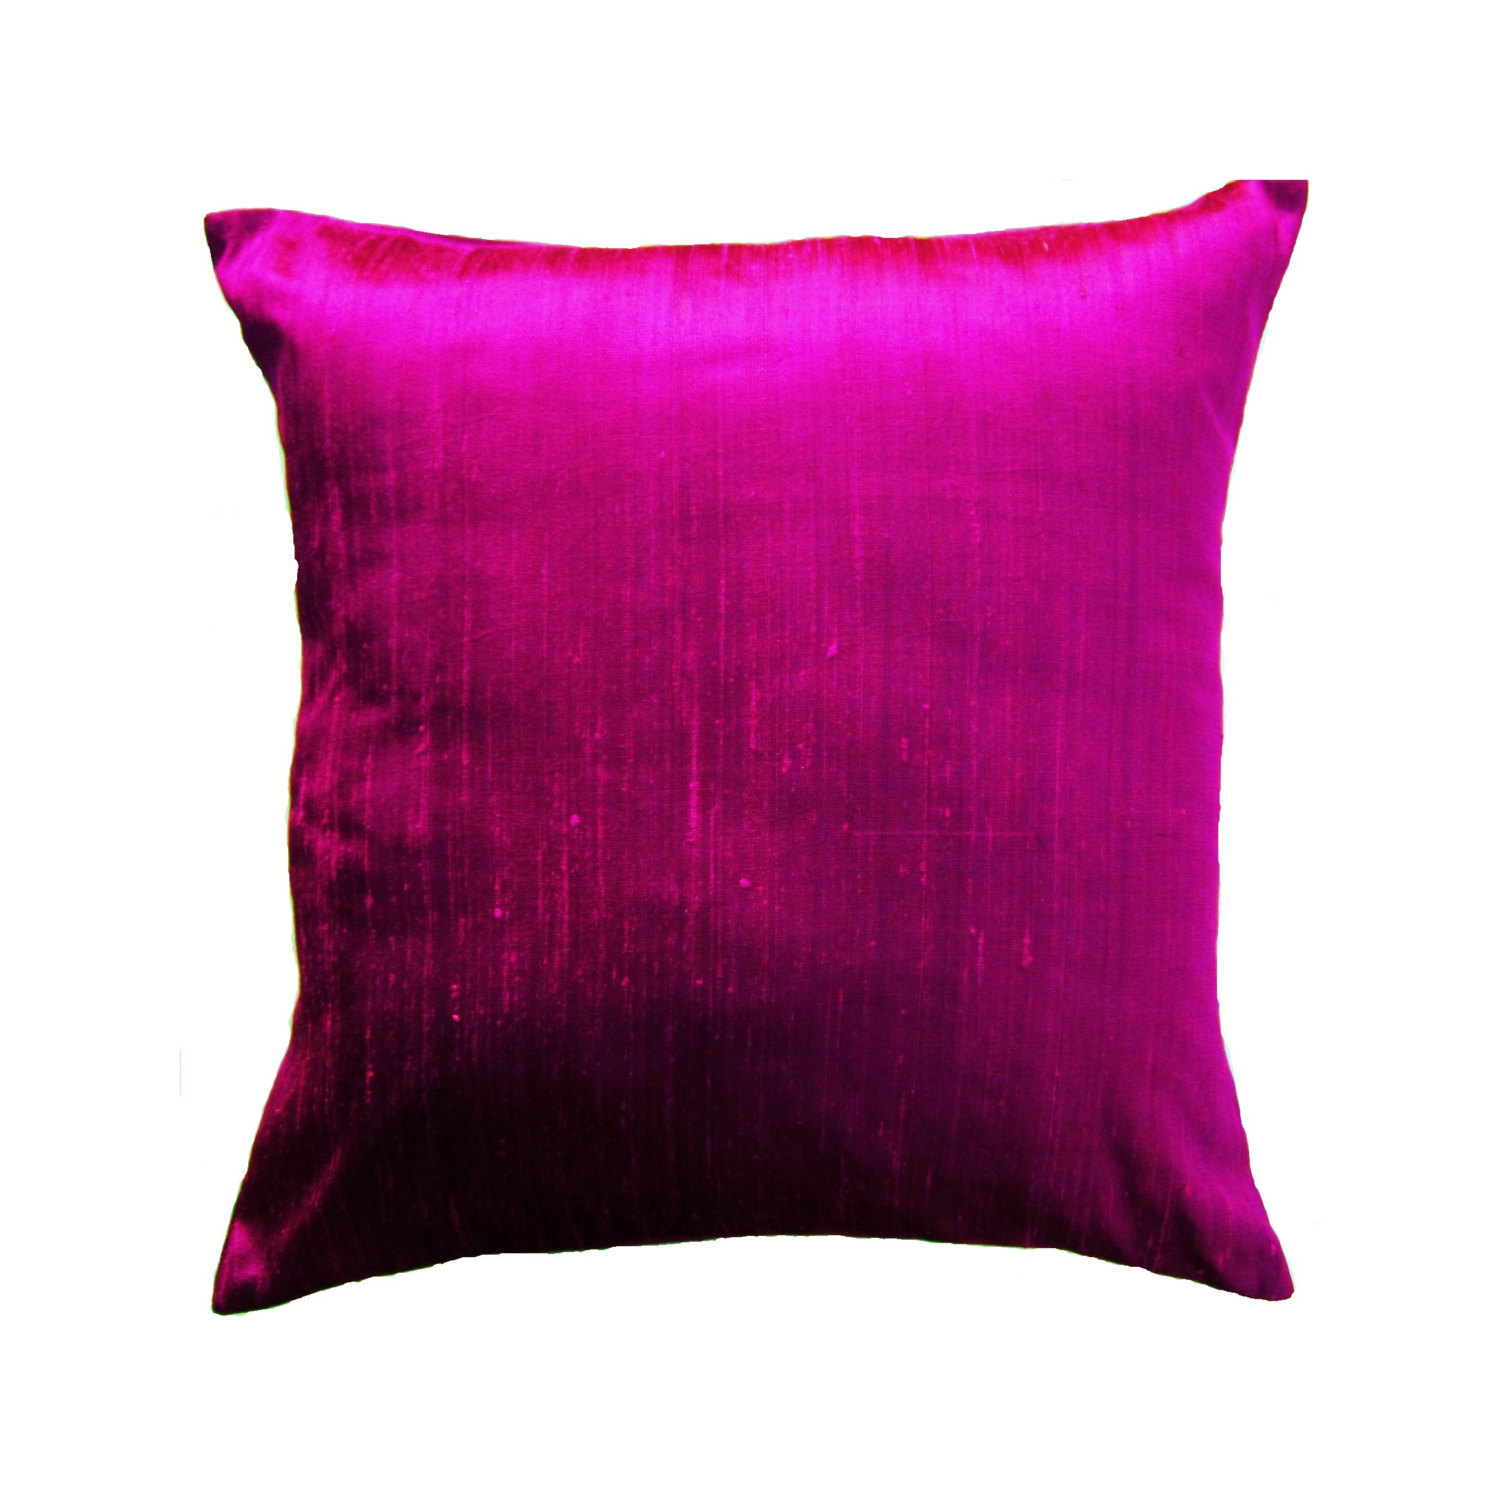 Dazzling Purple Throw Pillows With Lavender Pillow Colors And With Abstract Pattern Cushion For Sectional L Sofa Living Room Ideas